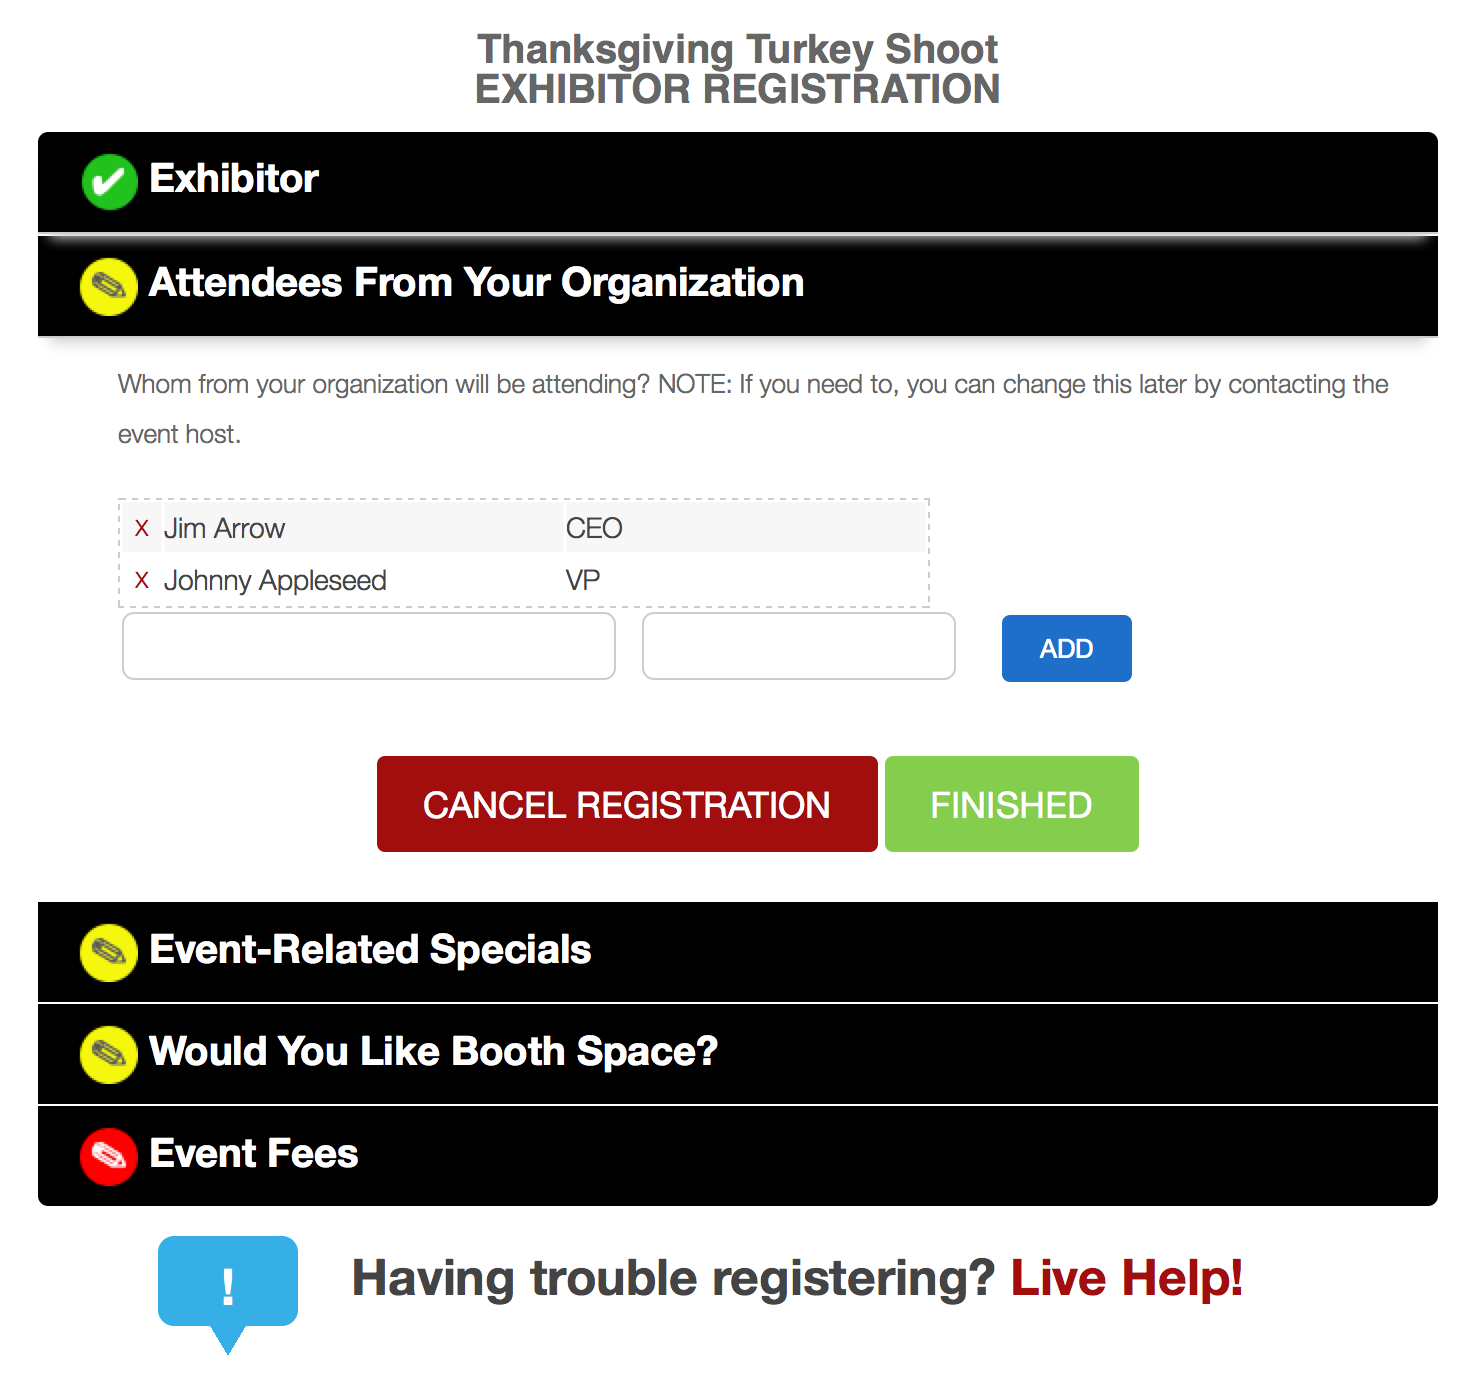 With our exhibitor registration module, you can set up exhibitor registration in minutes.